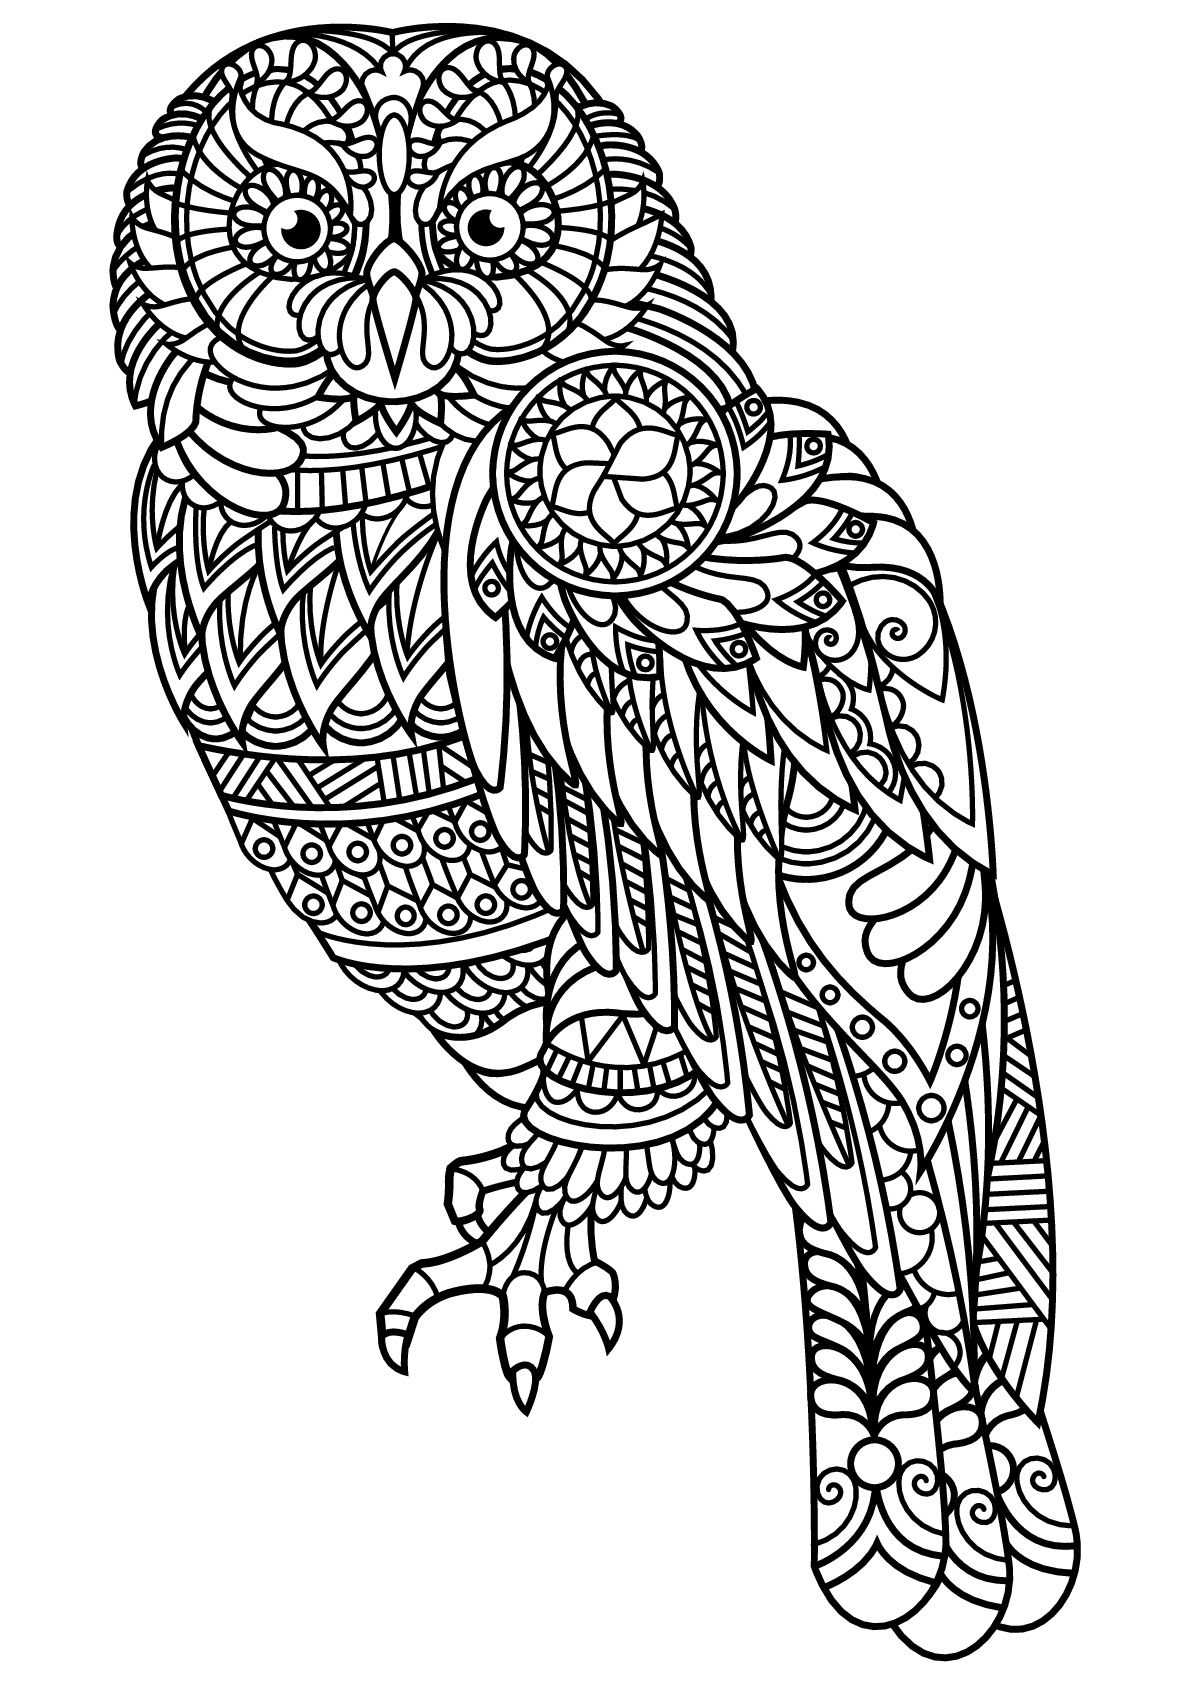 owl colouring owl coloring pages for adults free detailed owl coloring colouring owl 1 3